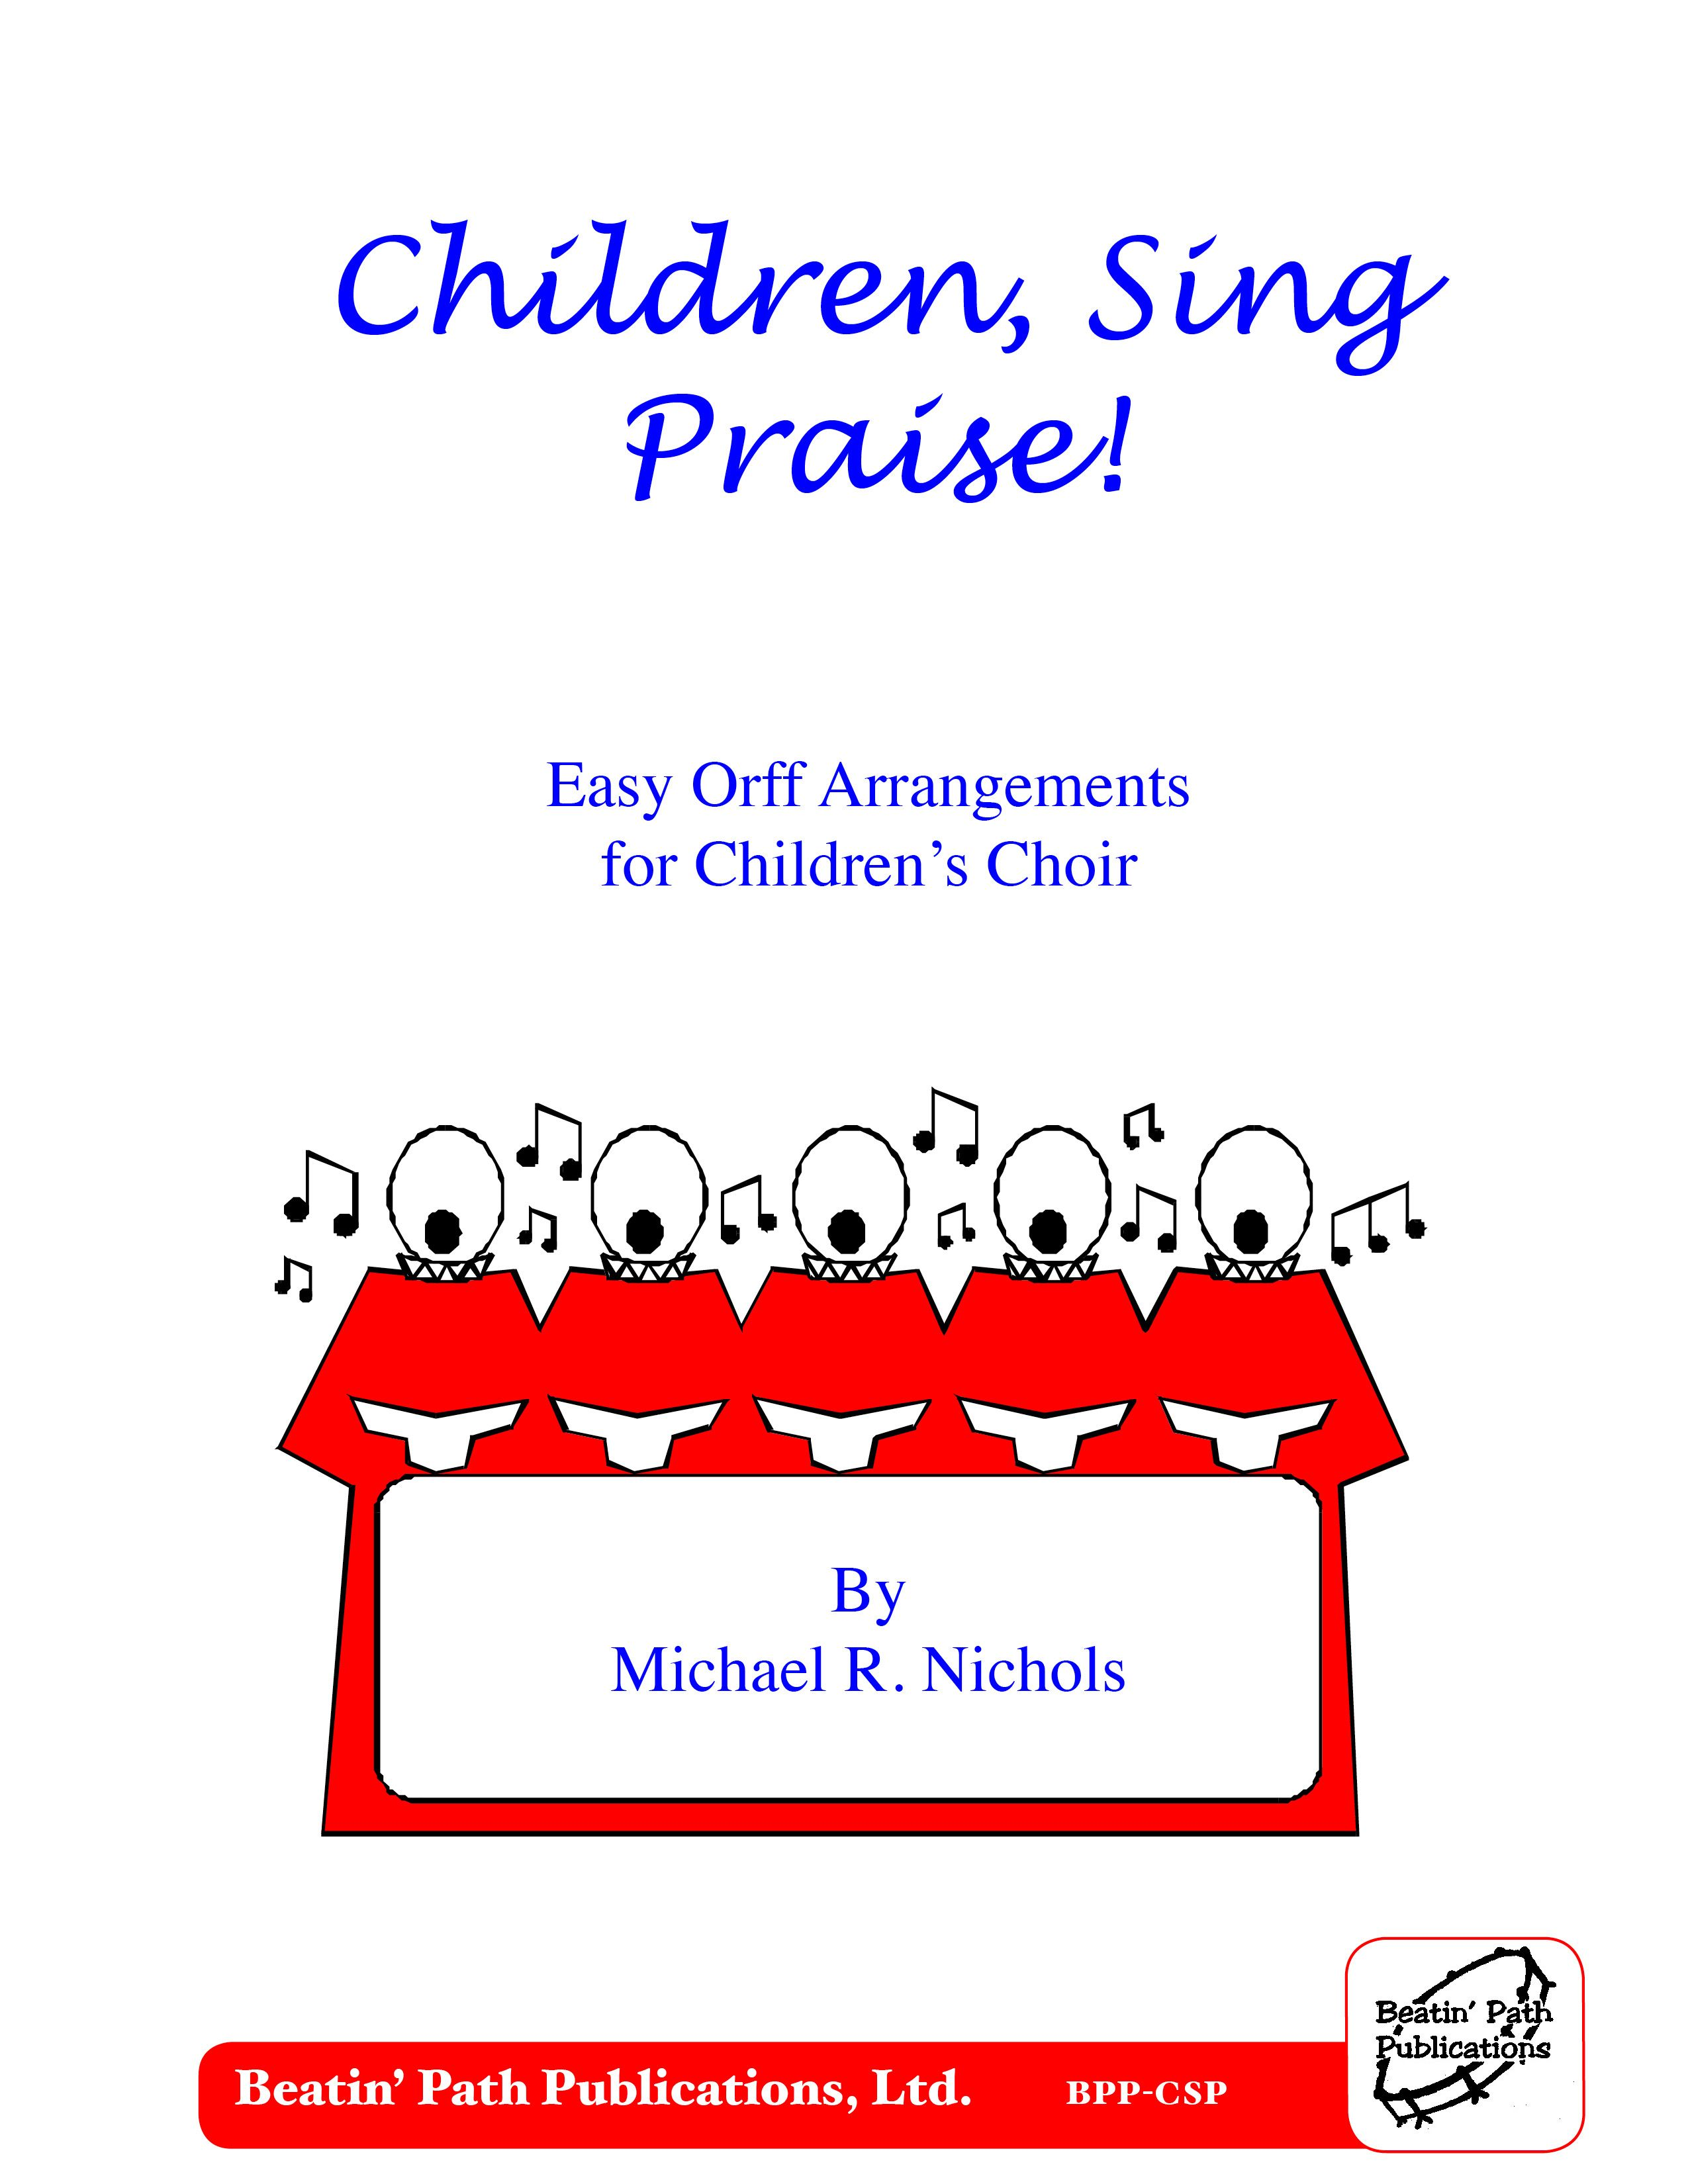 Children Sing Praise Is A Great Book And One Of Five